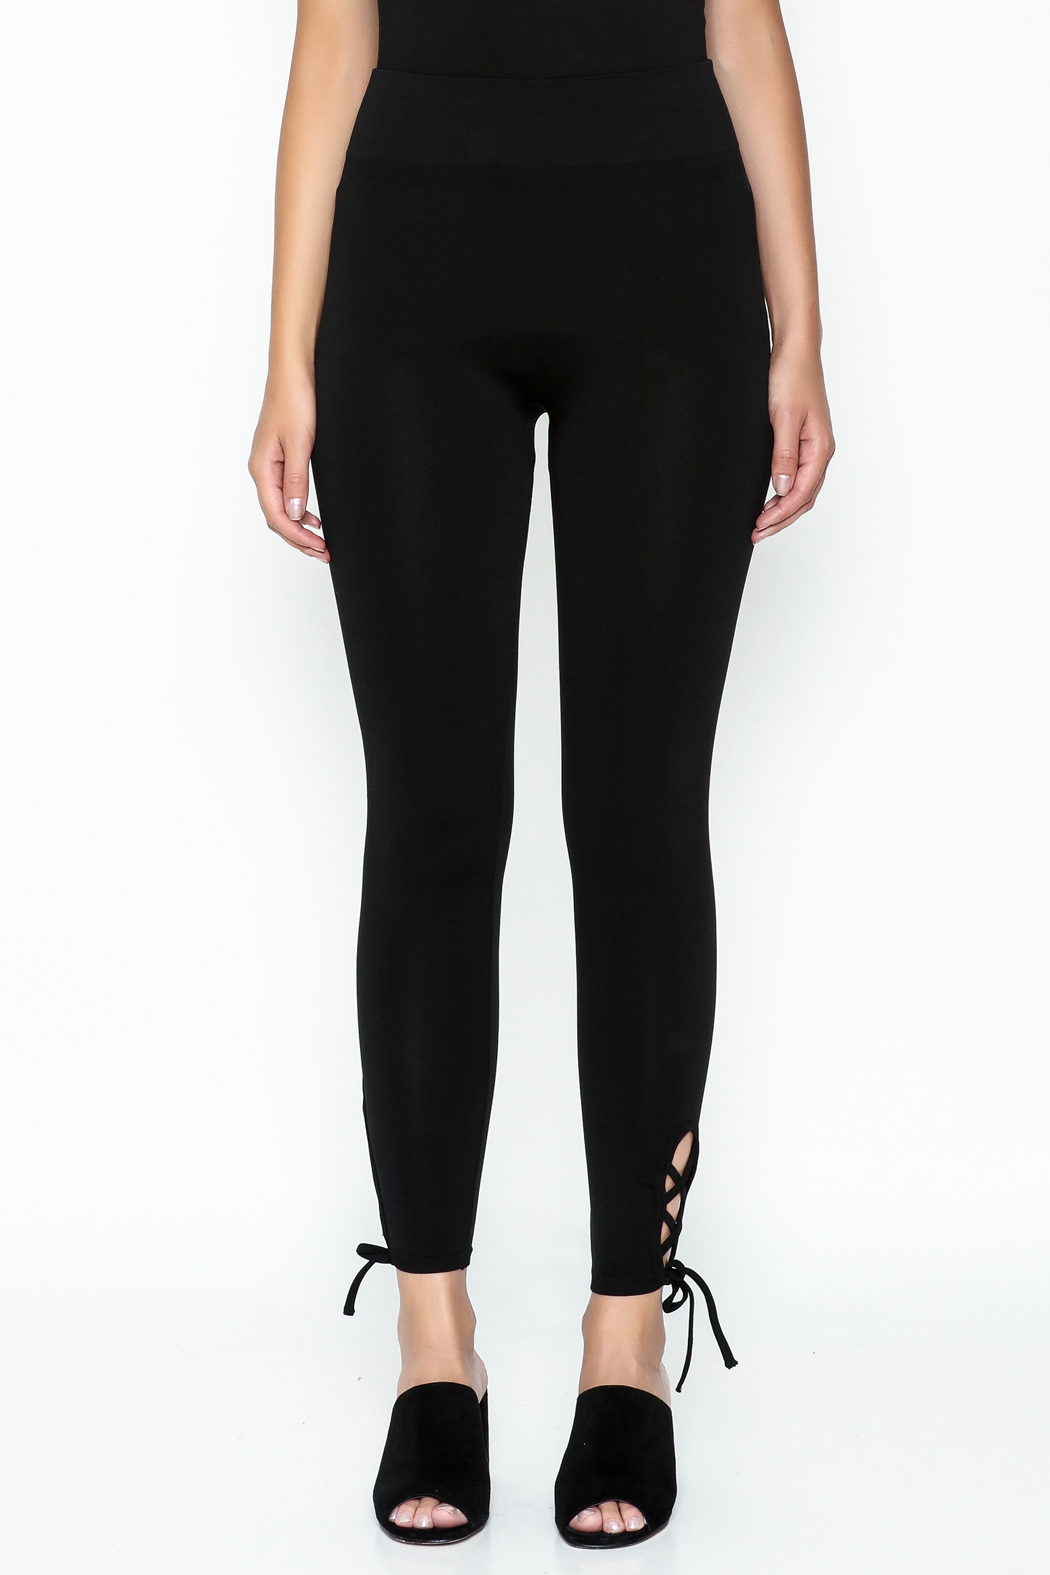 Private Label Criss Cross Leggings - Front Full Image